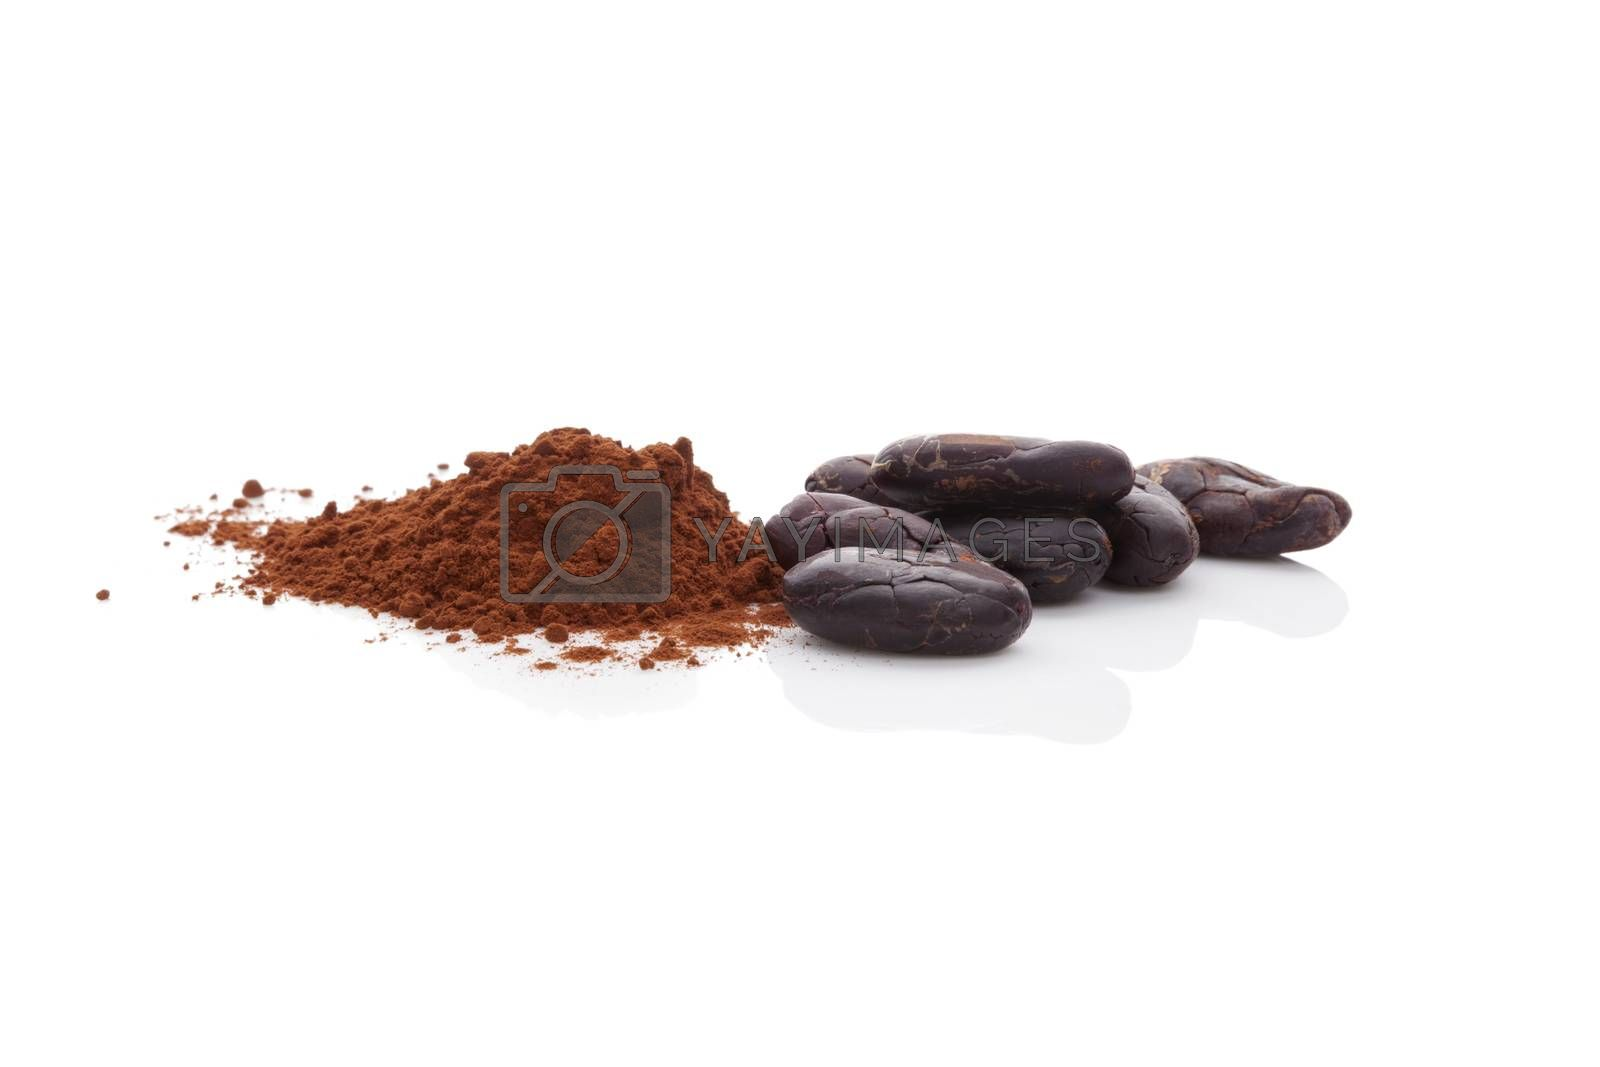 Cocoa beans and cocoa powder. by eskymaks